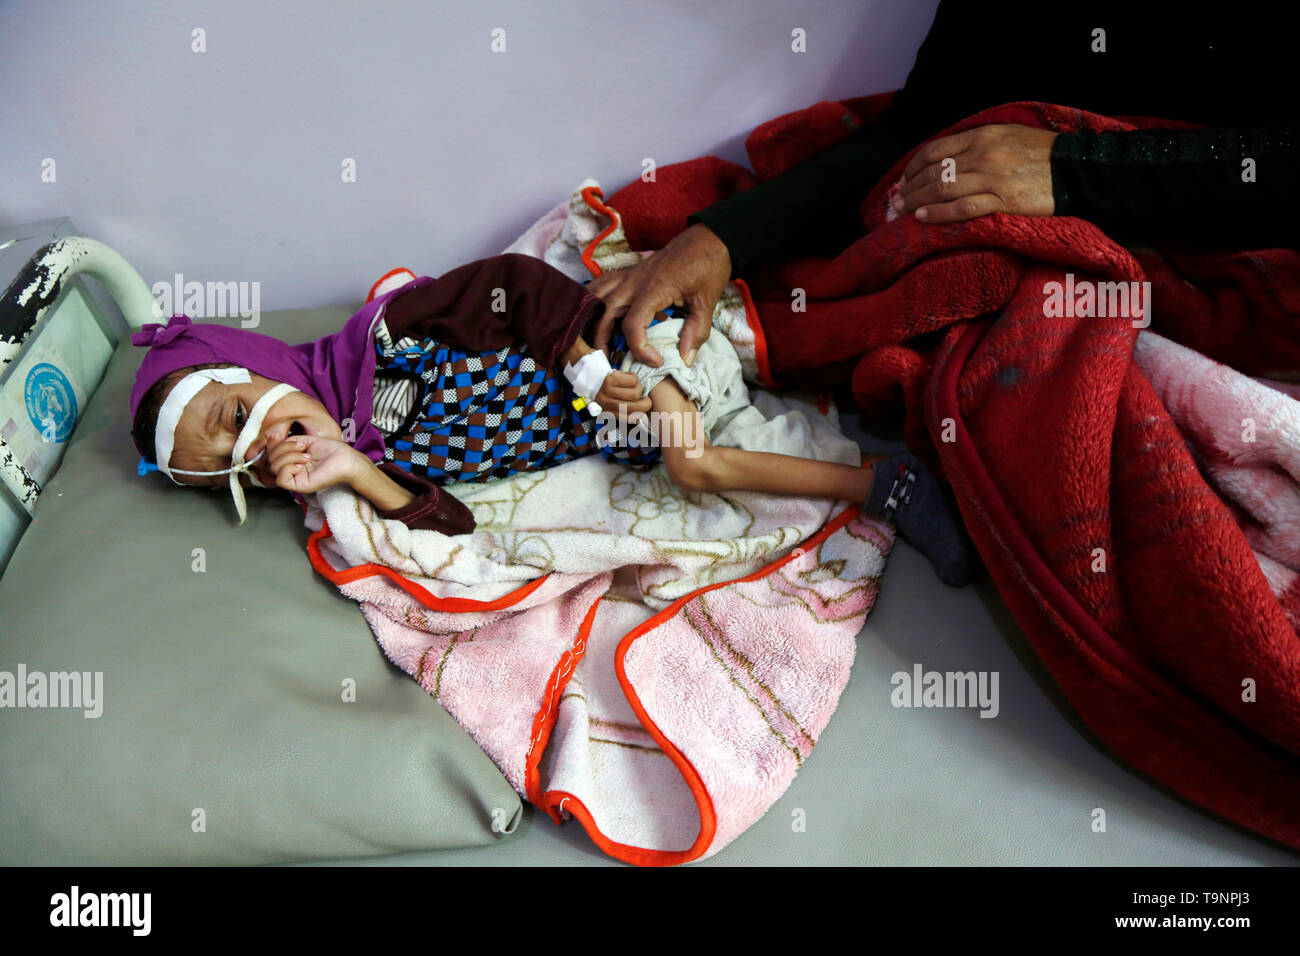 (190520) -- SANAA, May 20, 2019 (Xinhua) -- A mother sits with her malnourished daughter who lies on a bed while receiving treatment at a malnutrition care-center in Sanaa, Yemen, on May 19, 2019. With 360,000 children suffering from severe acute malnutrition and 2.5 million - or half of all children under the age of five - stunted, the country is spiralling perilously close to the brink, Executive Director of the United Nations Children's Fund  (UNICEF) Henrietta Fore warned. (Xinhua/Mohammed Mohammed) - Stock Image